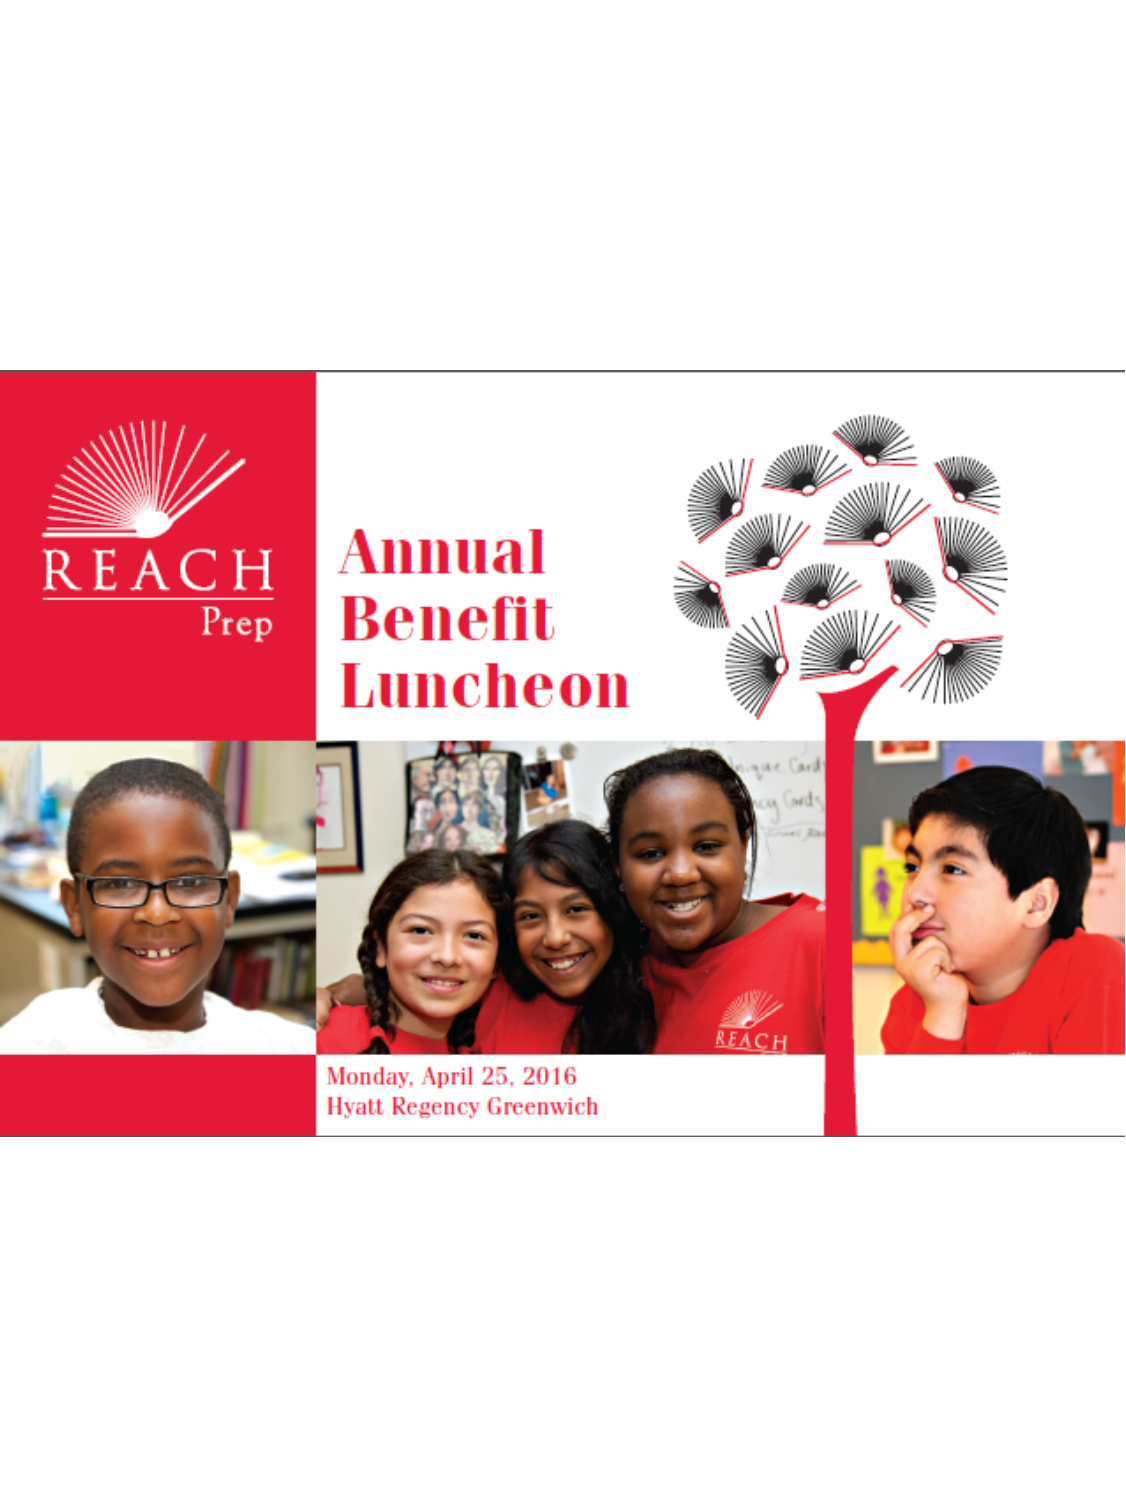 Annual Benefit Luncheon 2016